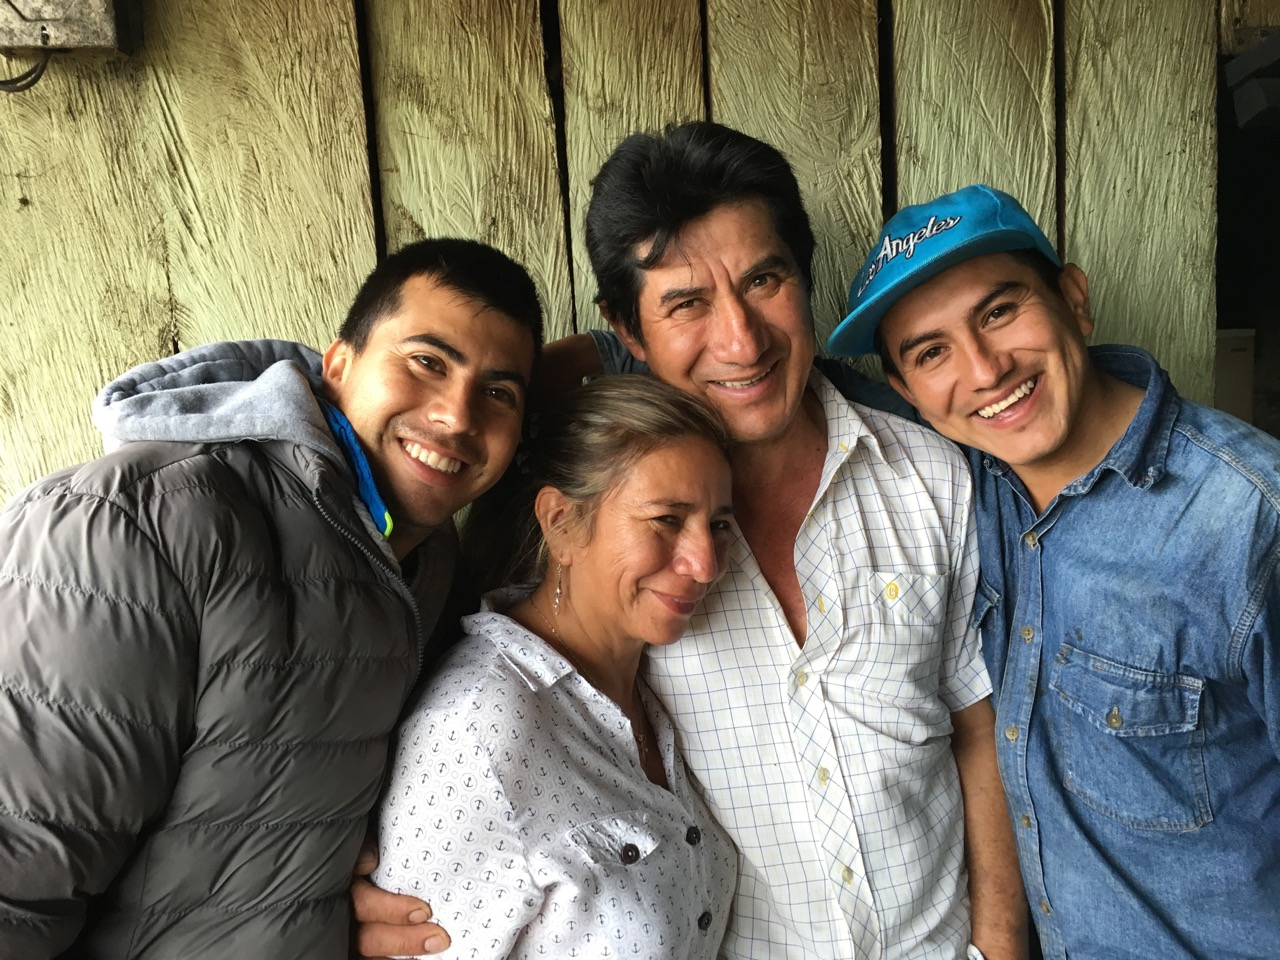 Maria with her husband Jose Erazo, and sons Diego and Daniel.